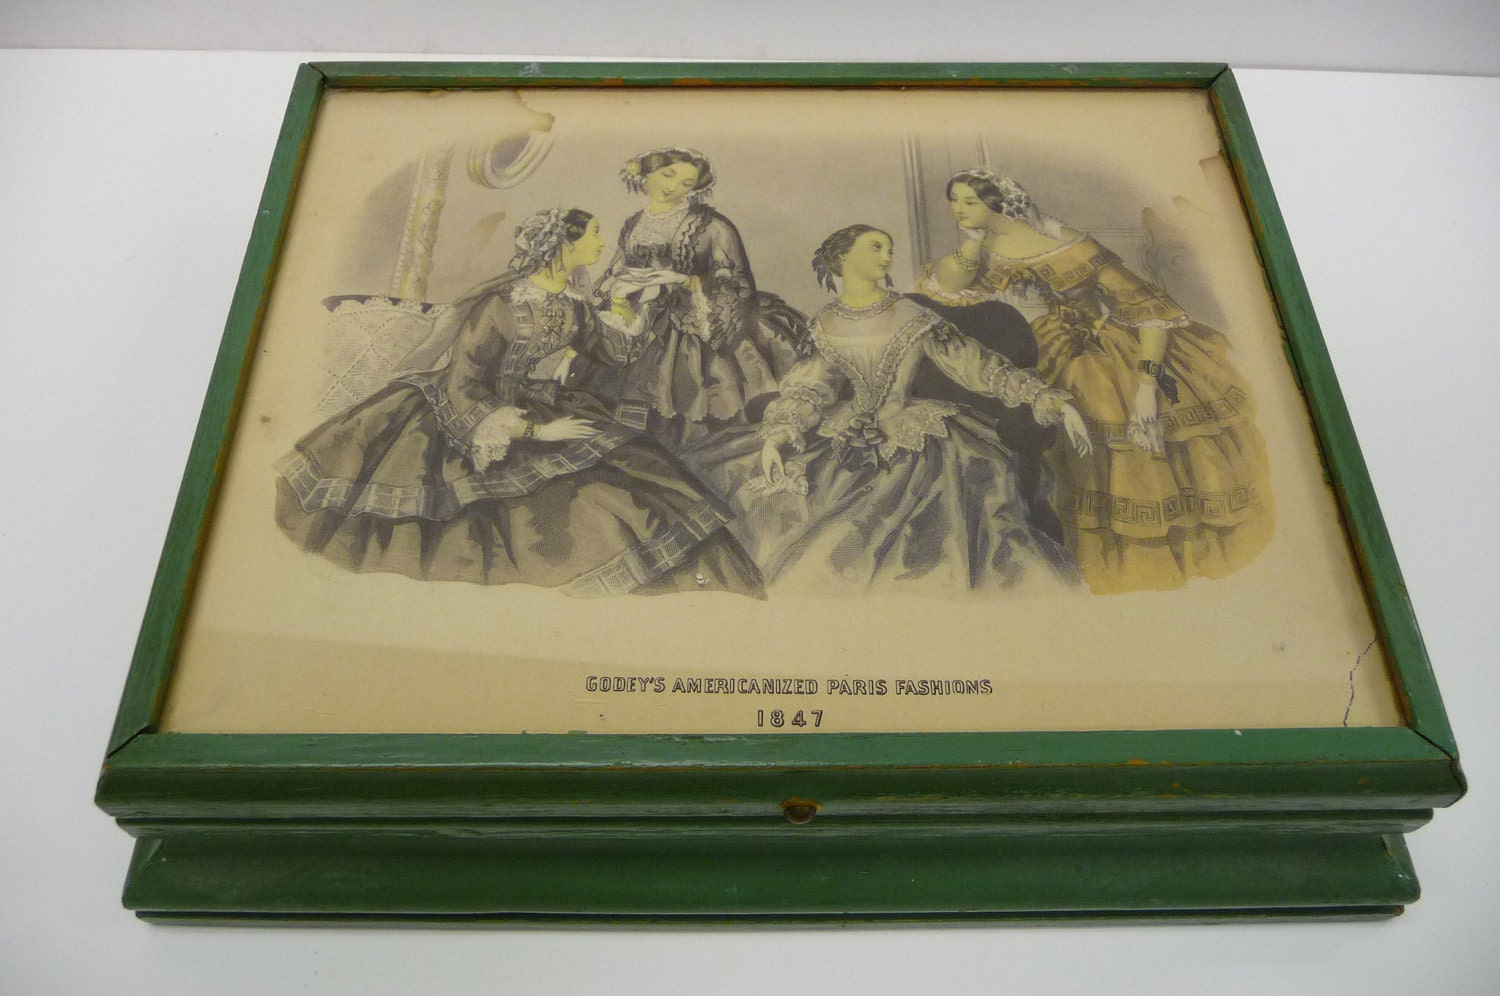 Vintage Jewelry Box With Antique Victorian Fashion Print Under